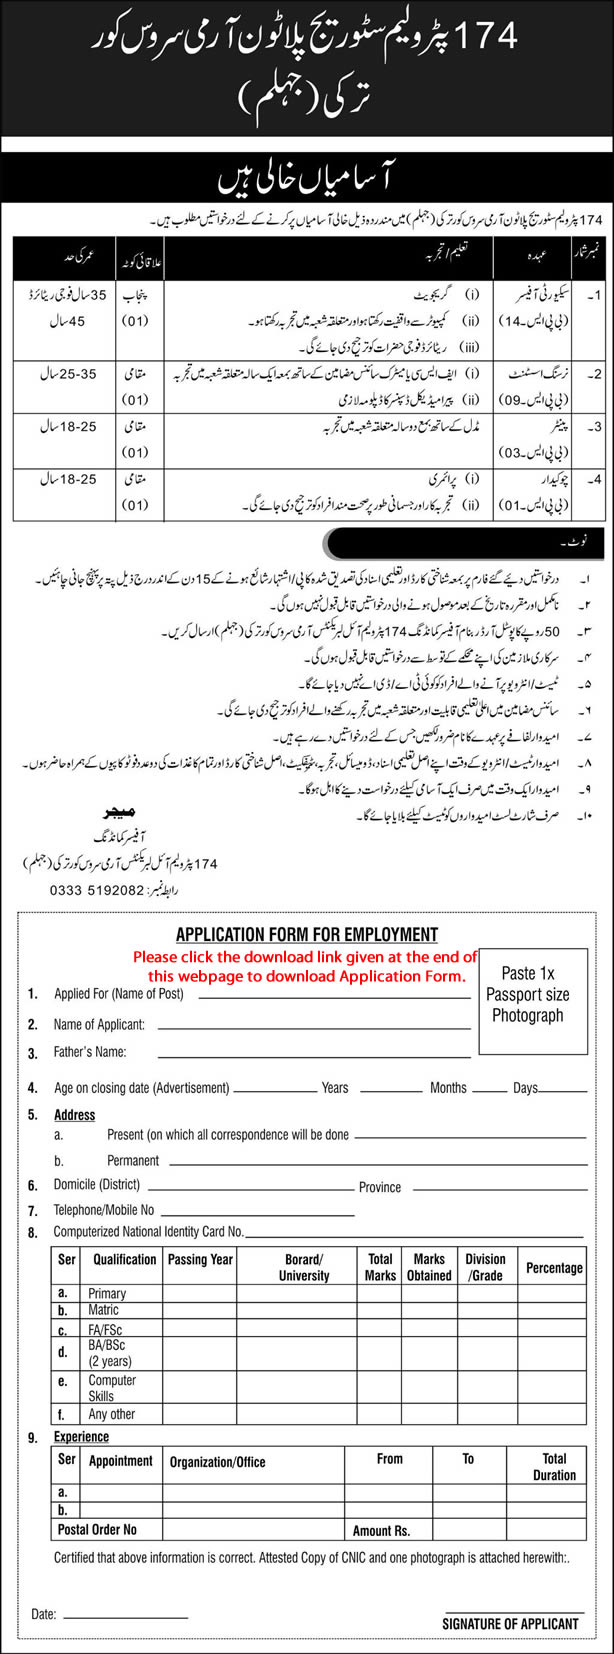 174 petroleum storage platoon army service corps jhelum jobs 2015 174 petroleum storage platoon army service corps jhelum jobs 2015 application form download falaconquin